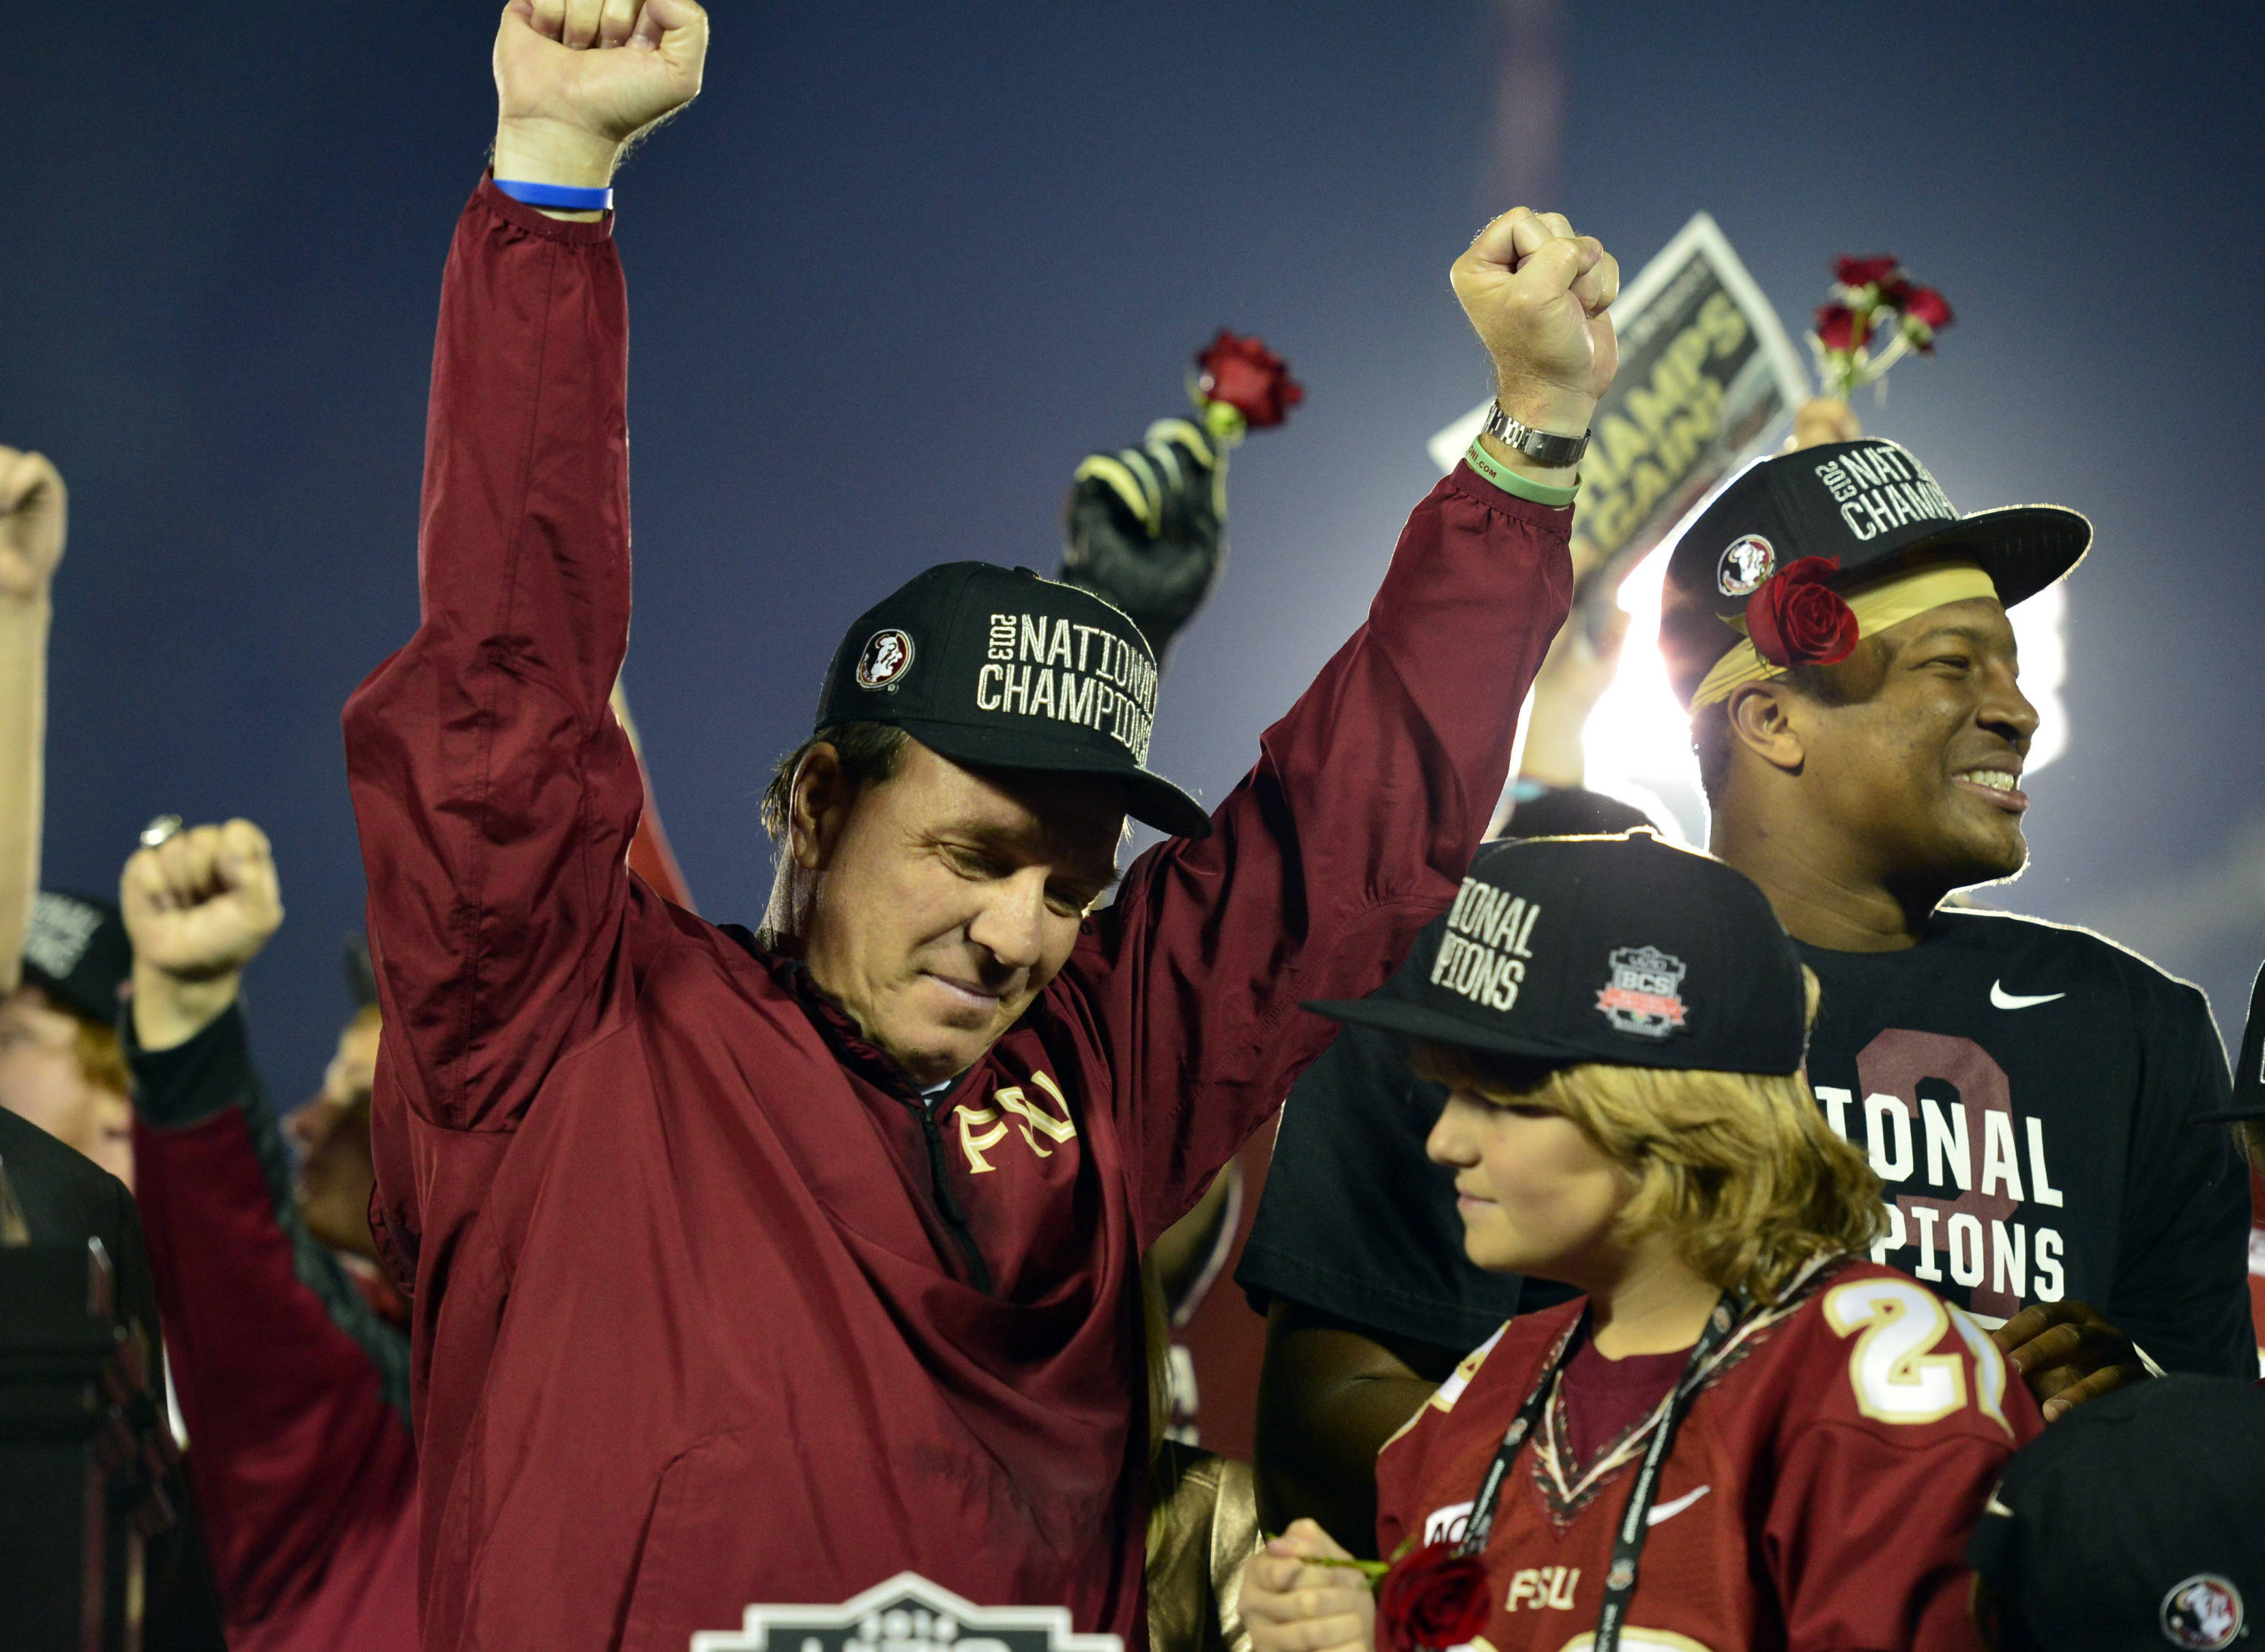 Jan 6, 2014; Pasadena, CA, USA; Florida State Seminoles head coach Jimbo Fisher celebrates after winning the 2014 BCS National Championship game against Auburn Tigers 34-31 at the Rose Bowl.  Mandatory Credit: Richard Mackson-USA TODAY Sports